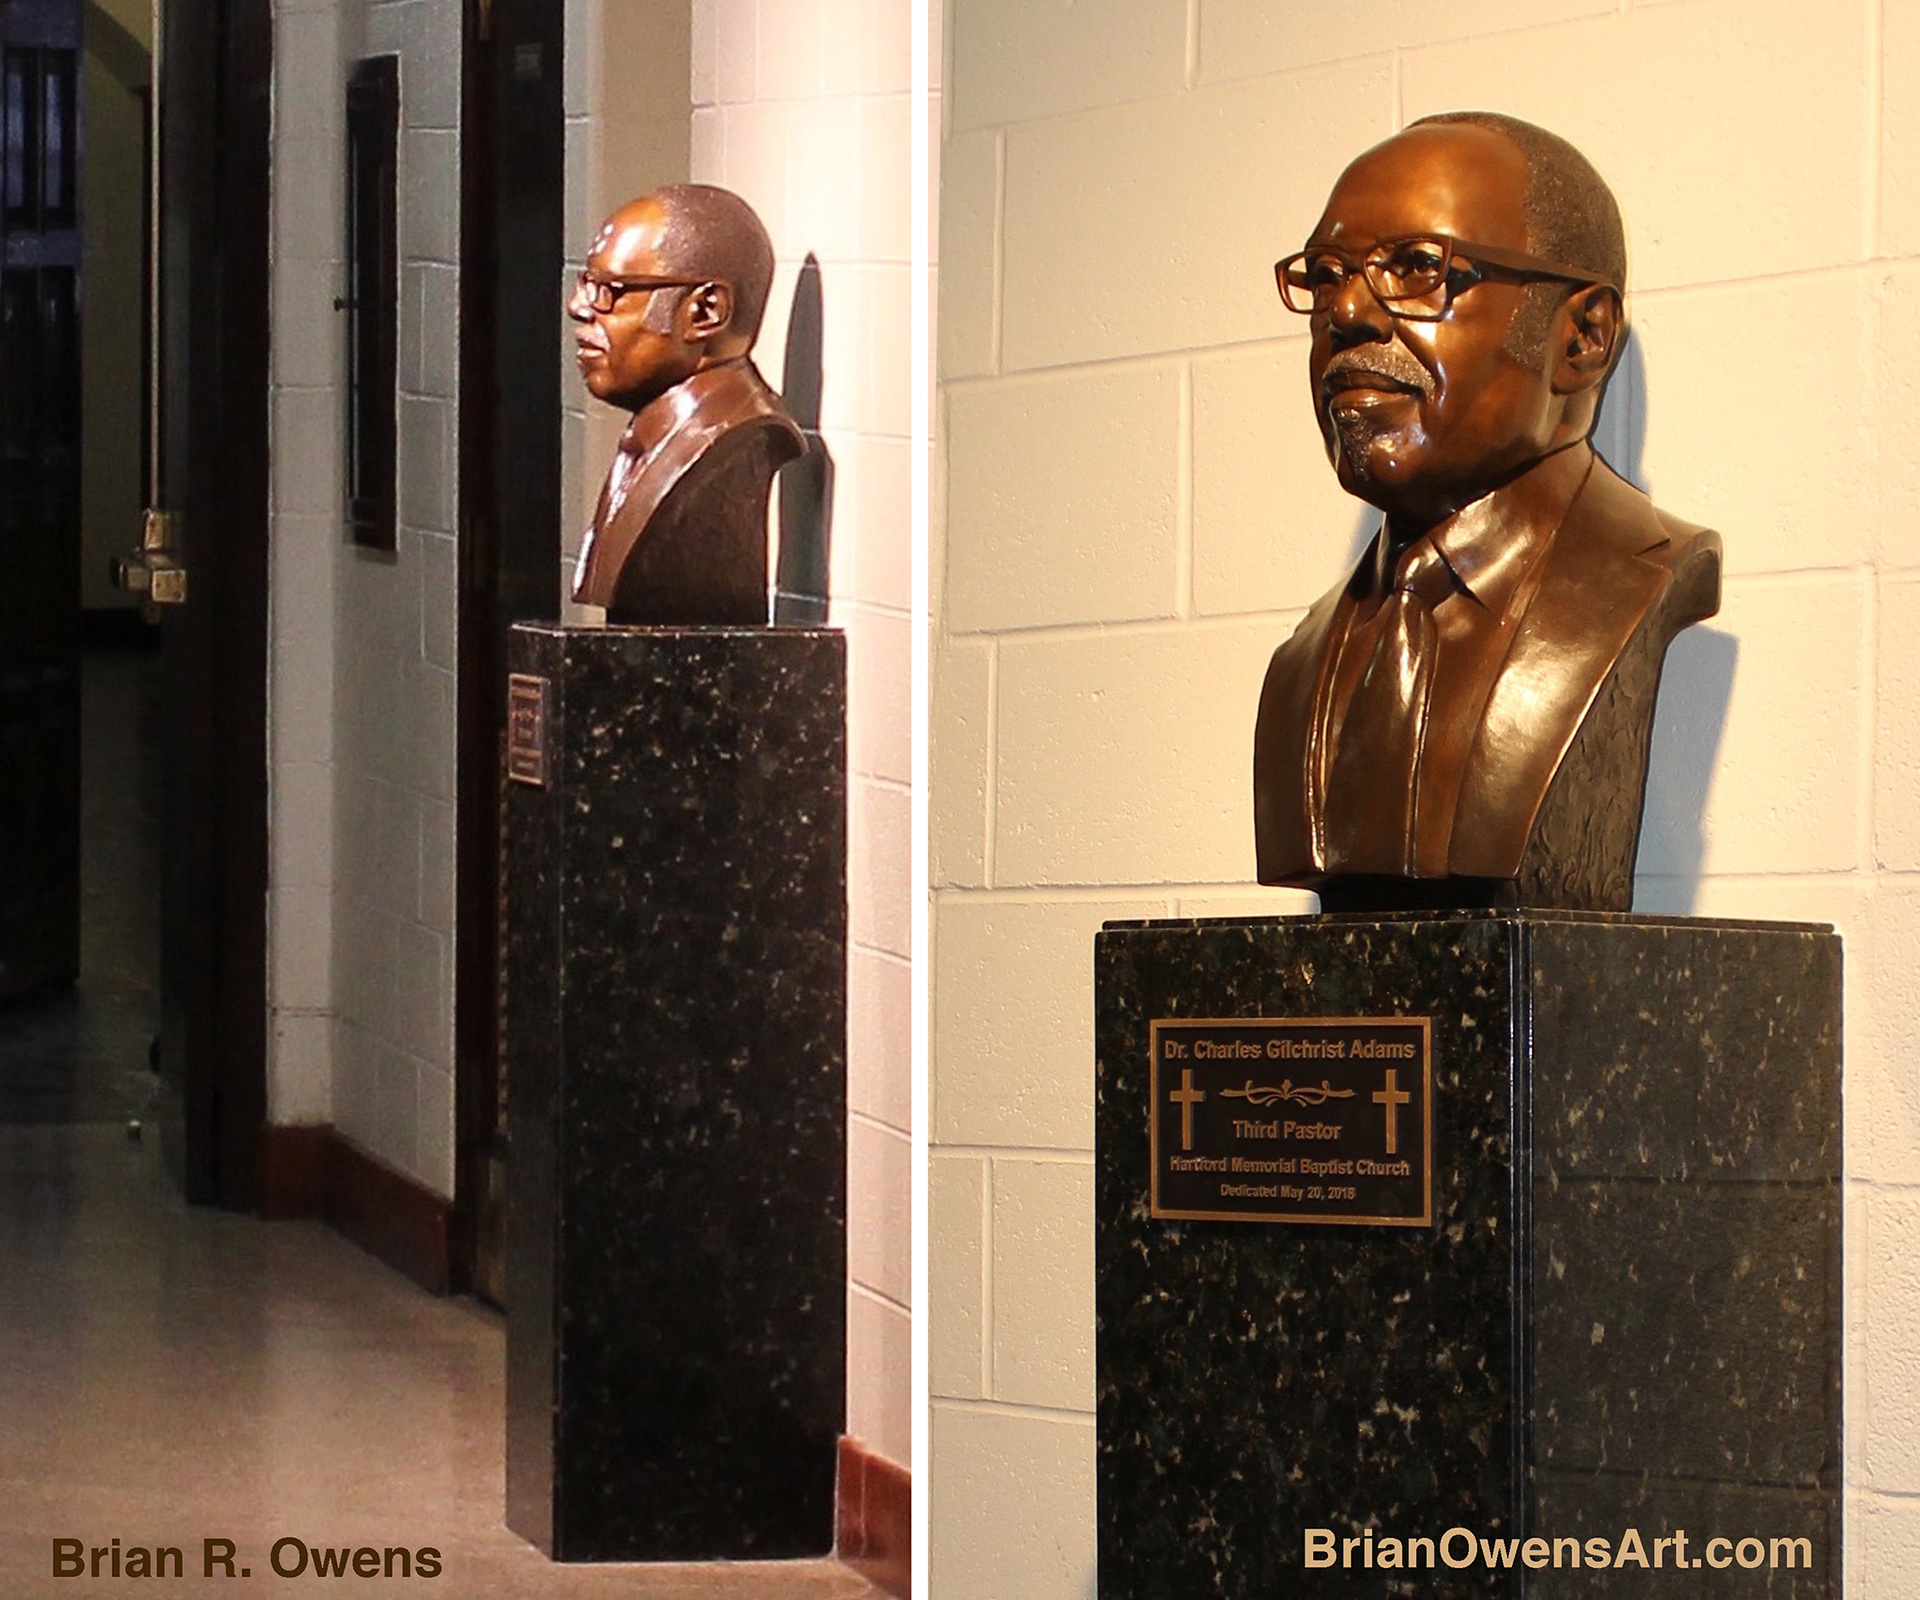 Bust of Dr. Charles G. Adams, installed